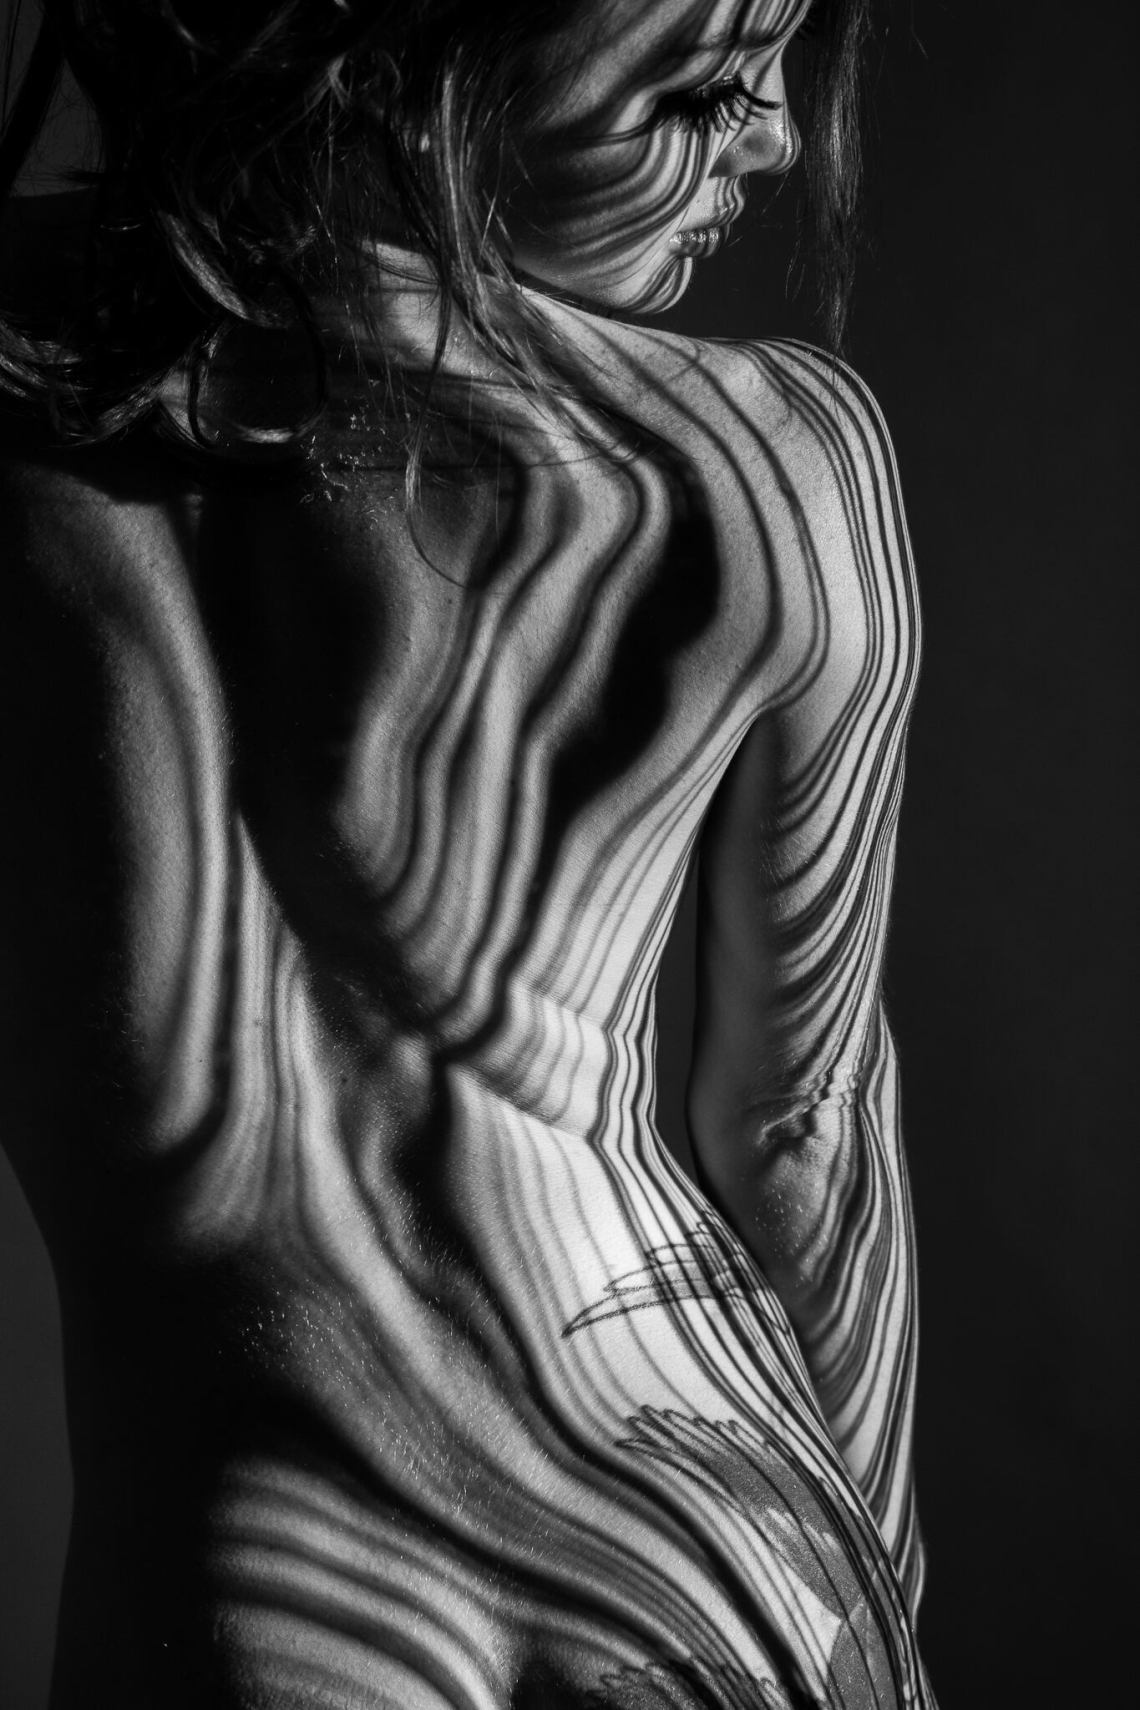 Shadow Photography, physique, physique Photography, fitness model, fitness Photography, fitness inspiration, girls with muscle, muscle girls, fit girls, circus artist